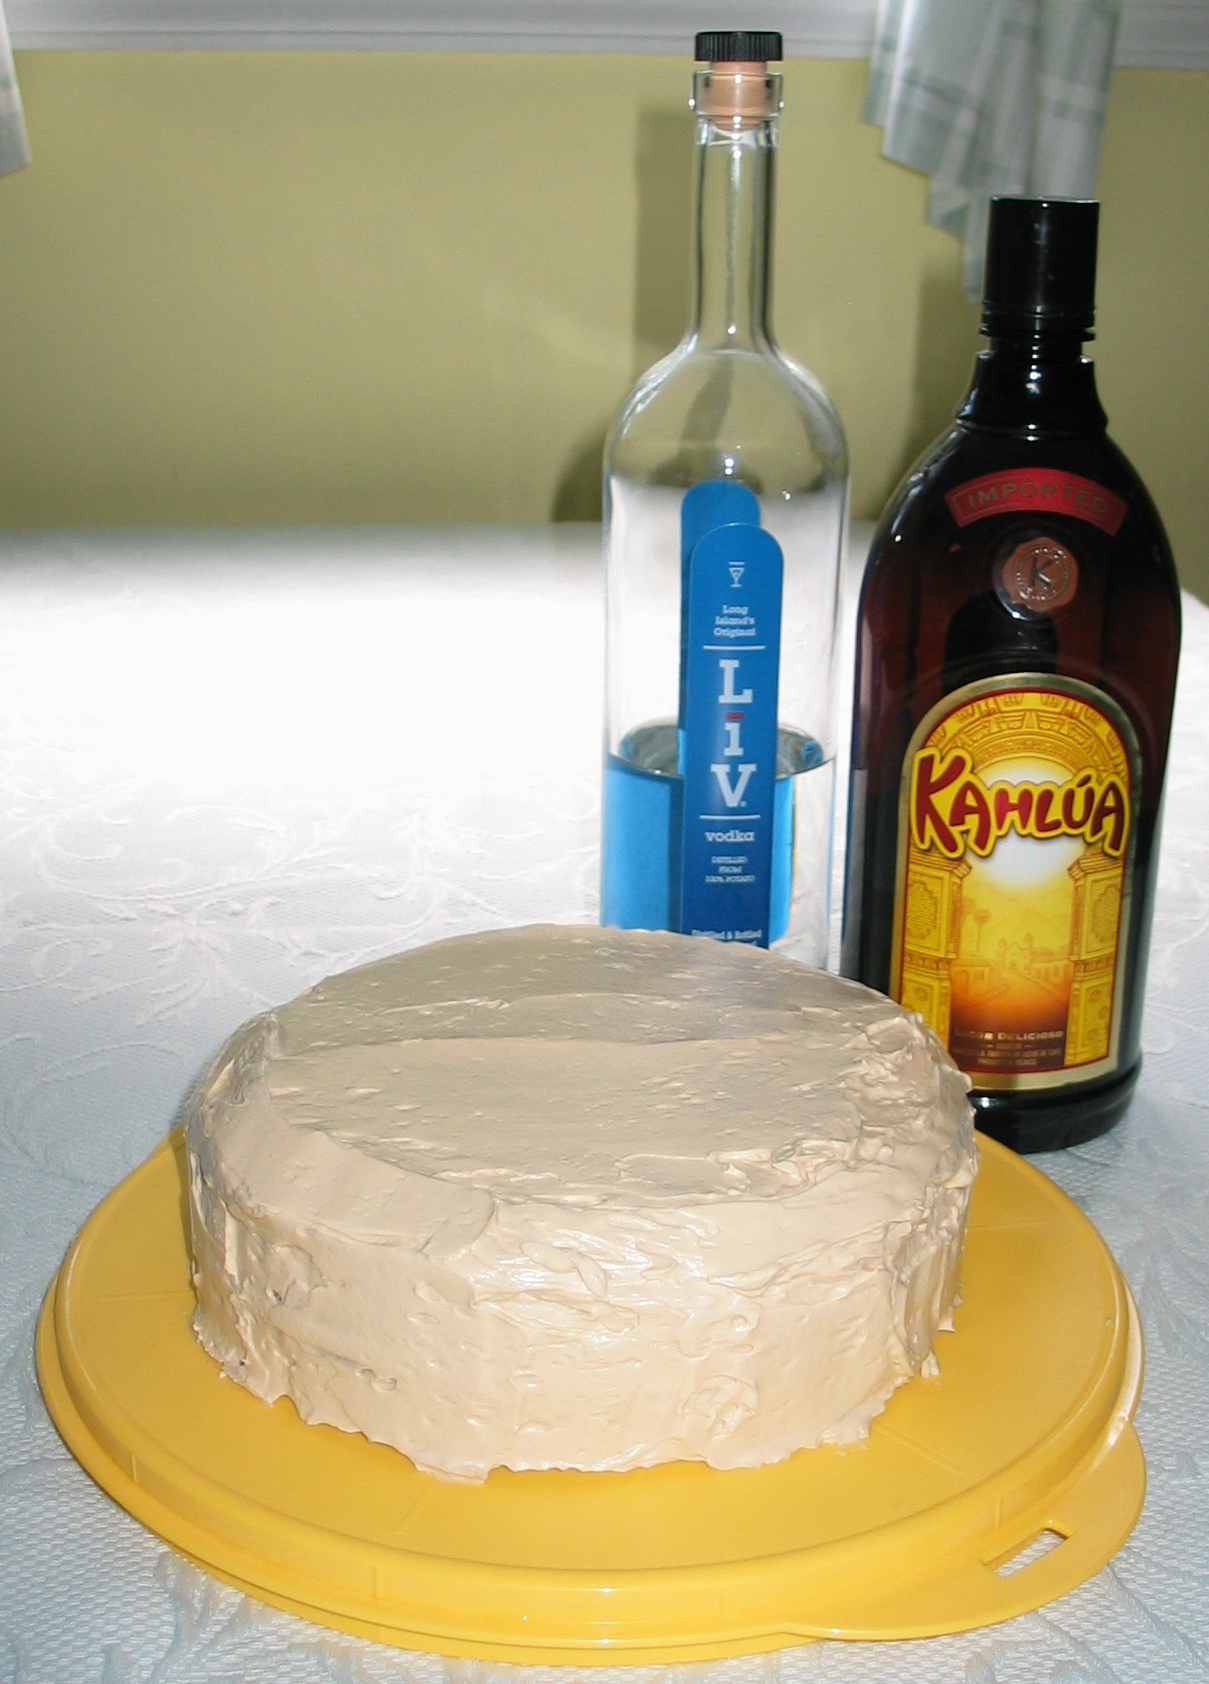 ... . Ferment's Semi-homemade White Russian Cake – Drunk & Unemployed